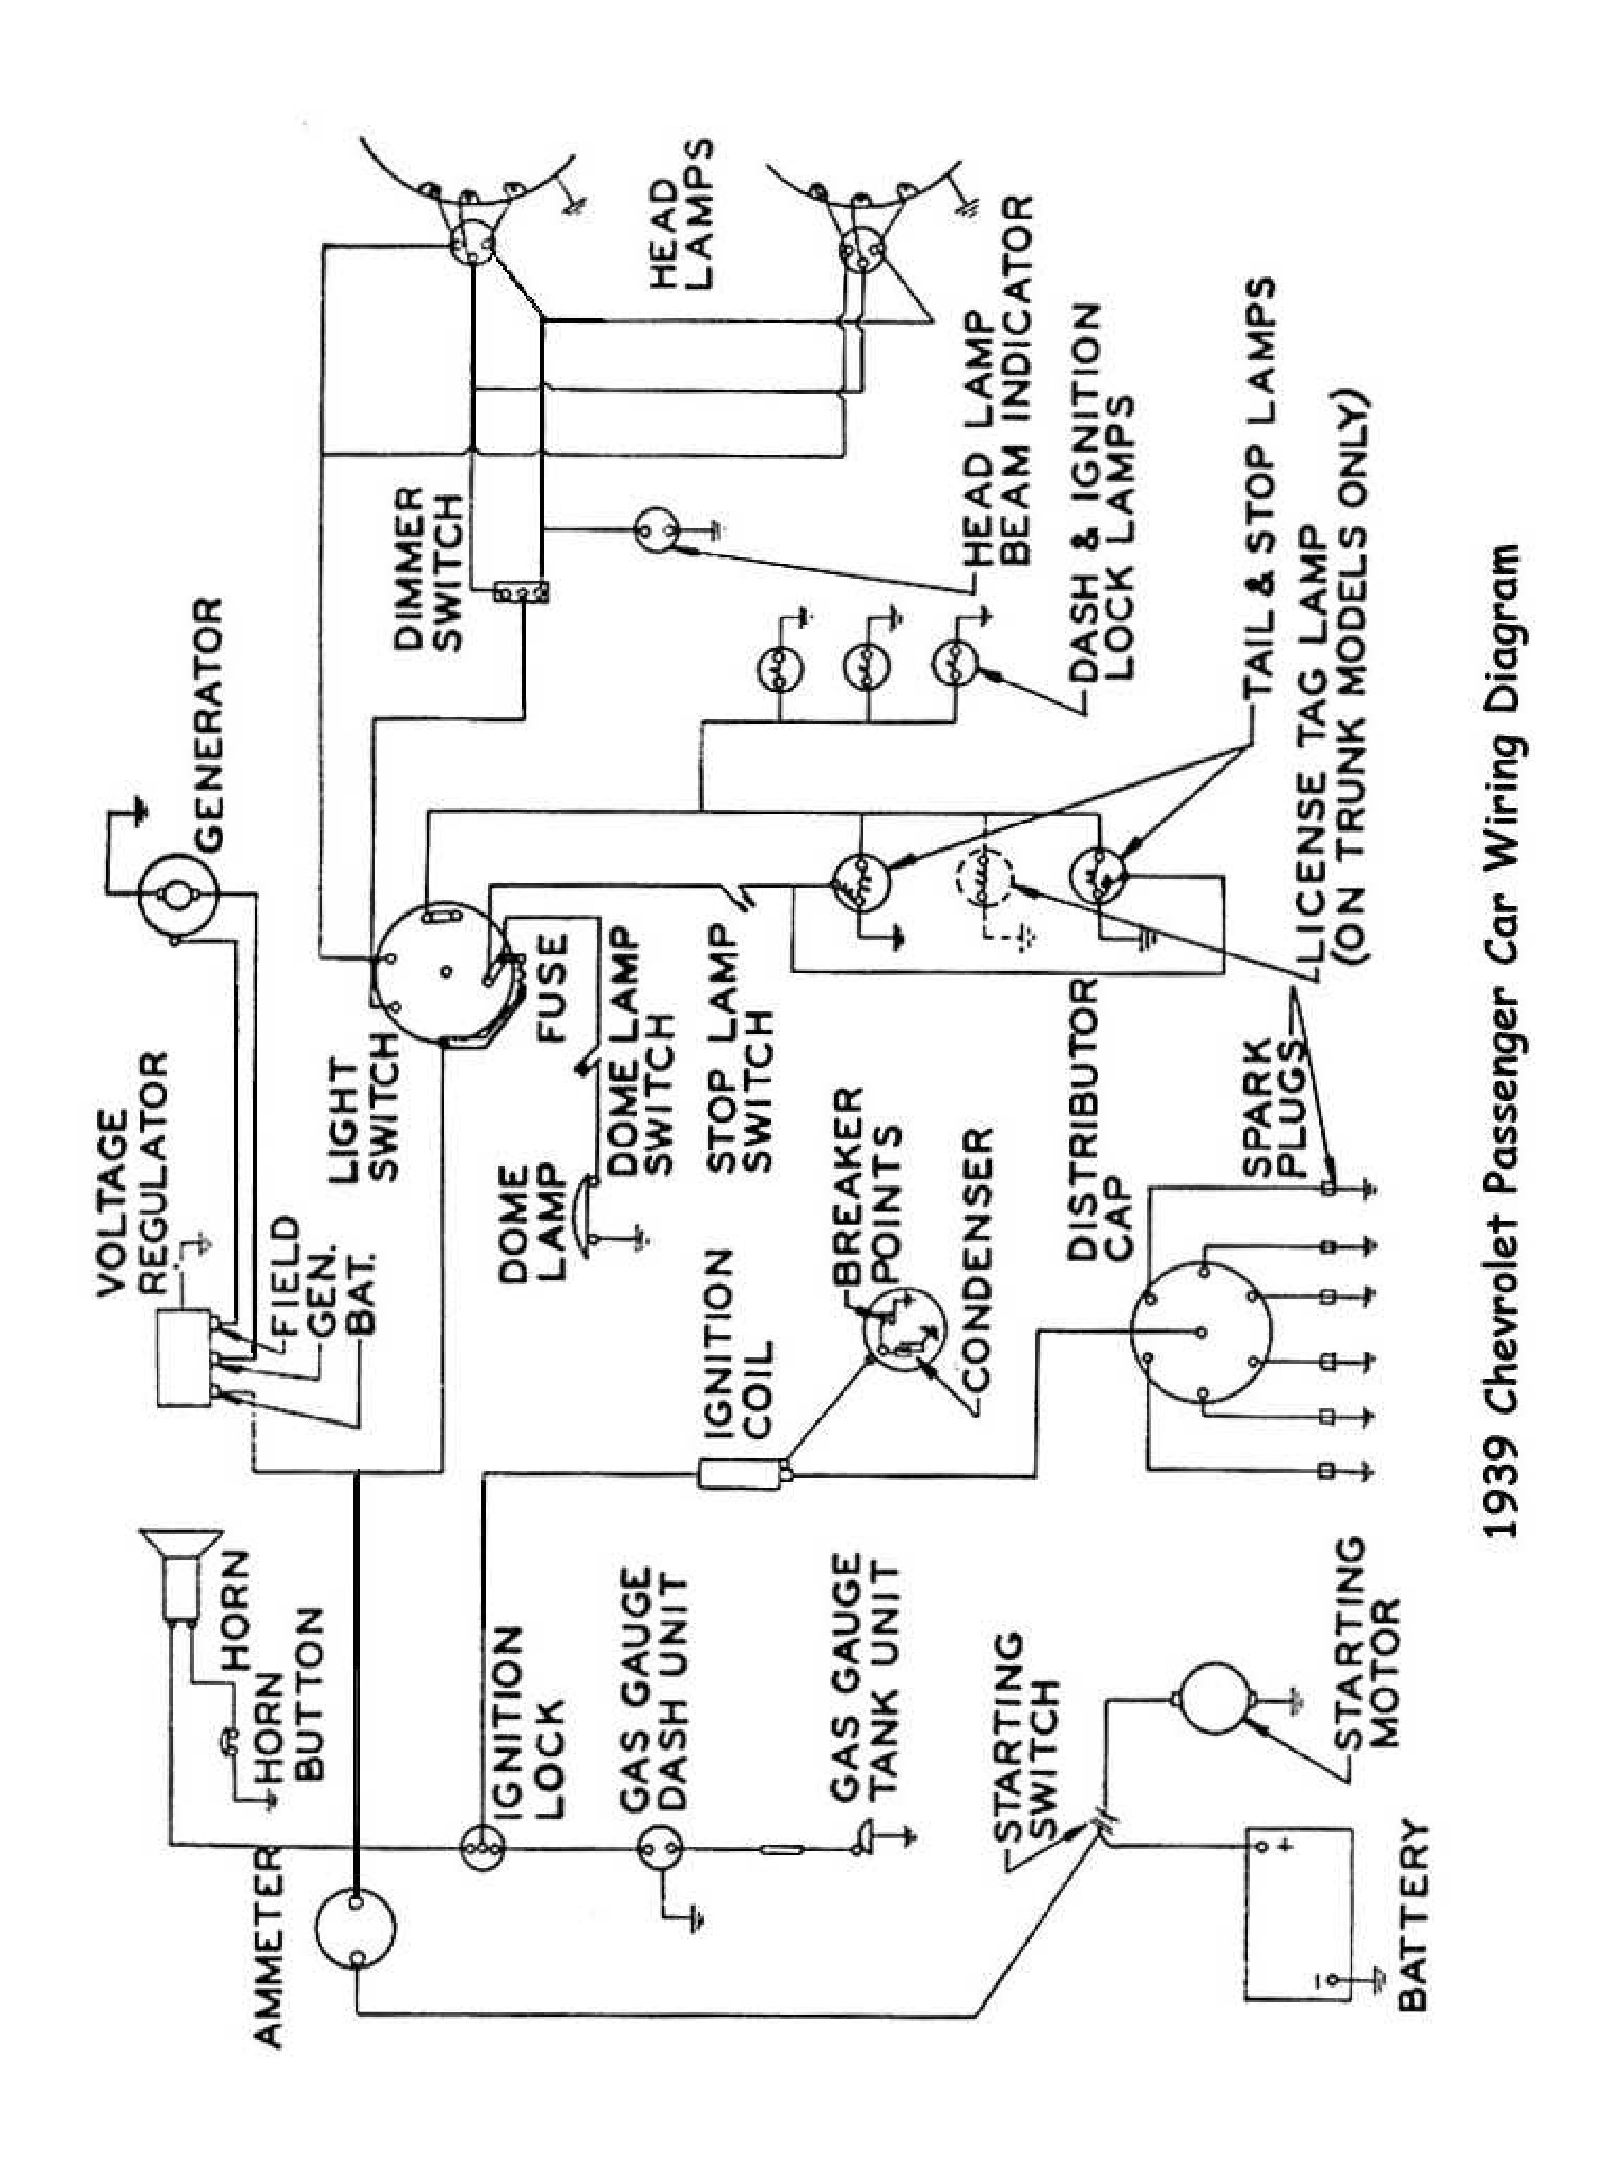 Vauxhall Distributor Wiring Diagram together with RepairGuideContent additionally P 0996b43f8038ee3d additionally 85 Blazer Vacuum Diagram Wiring Schematic likewise Chevy V8 Firing Order Hei. on 1993 gmc sierra 1500 distributor engine